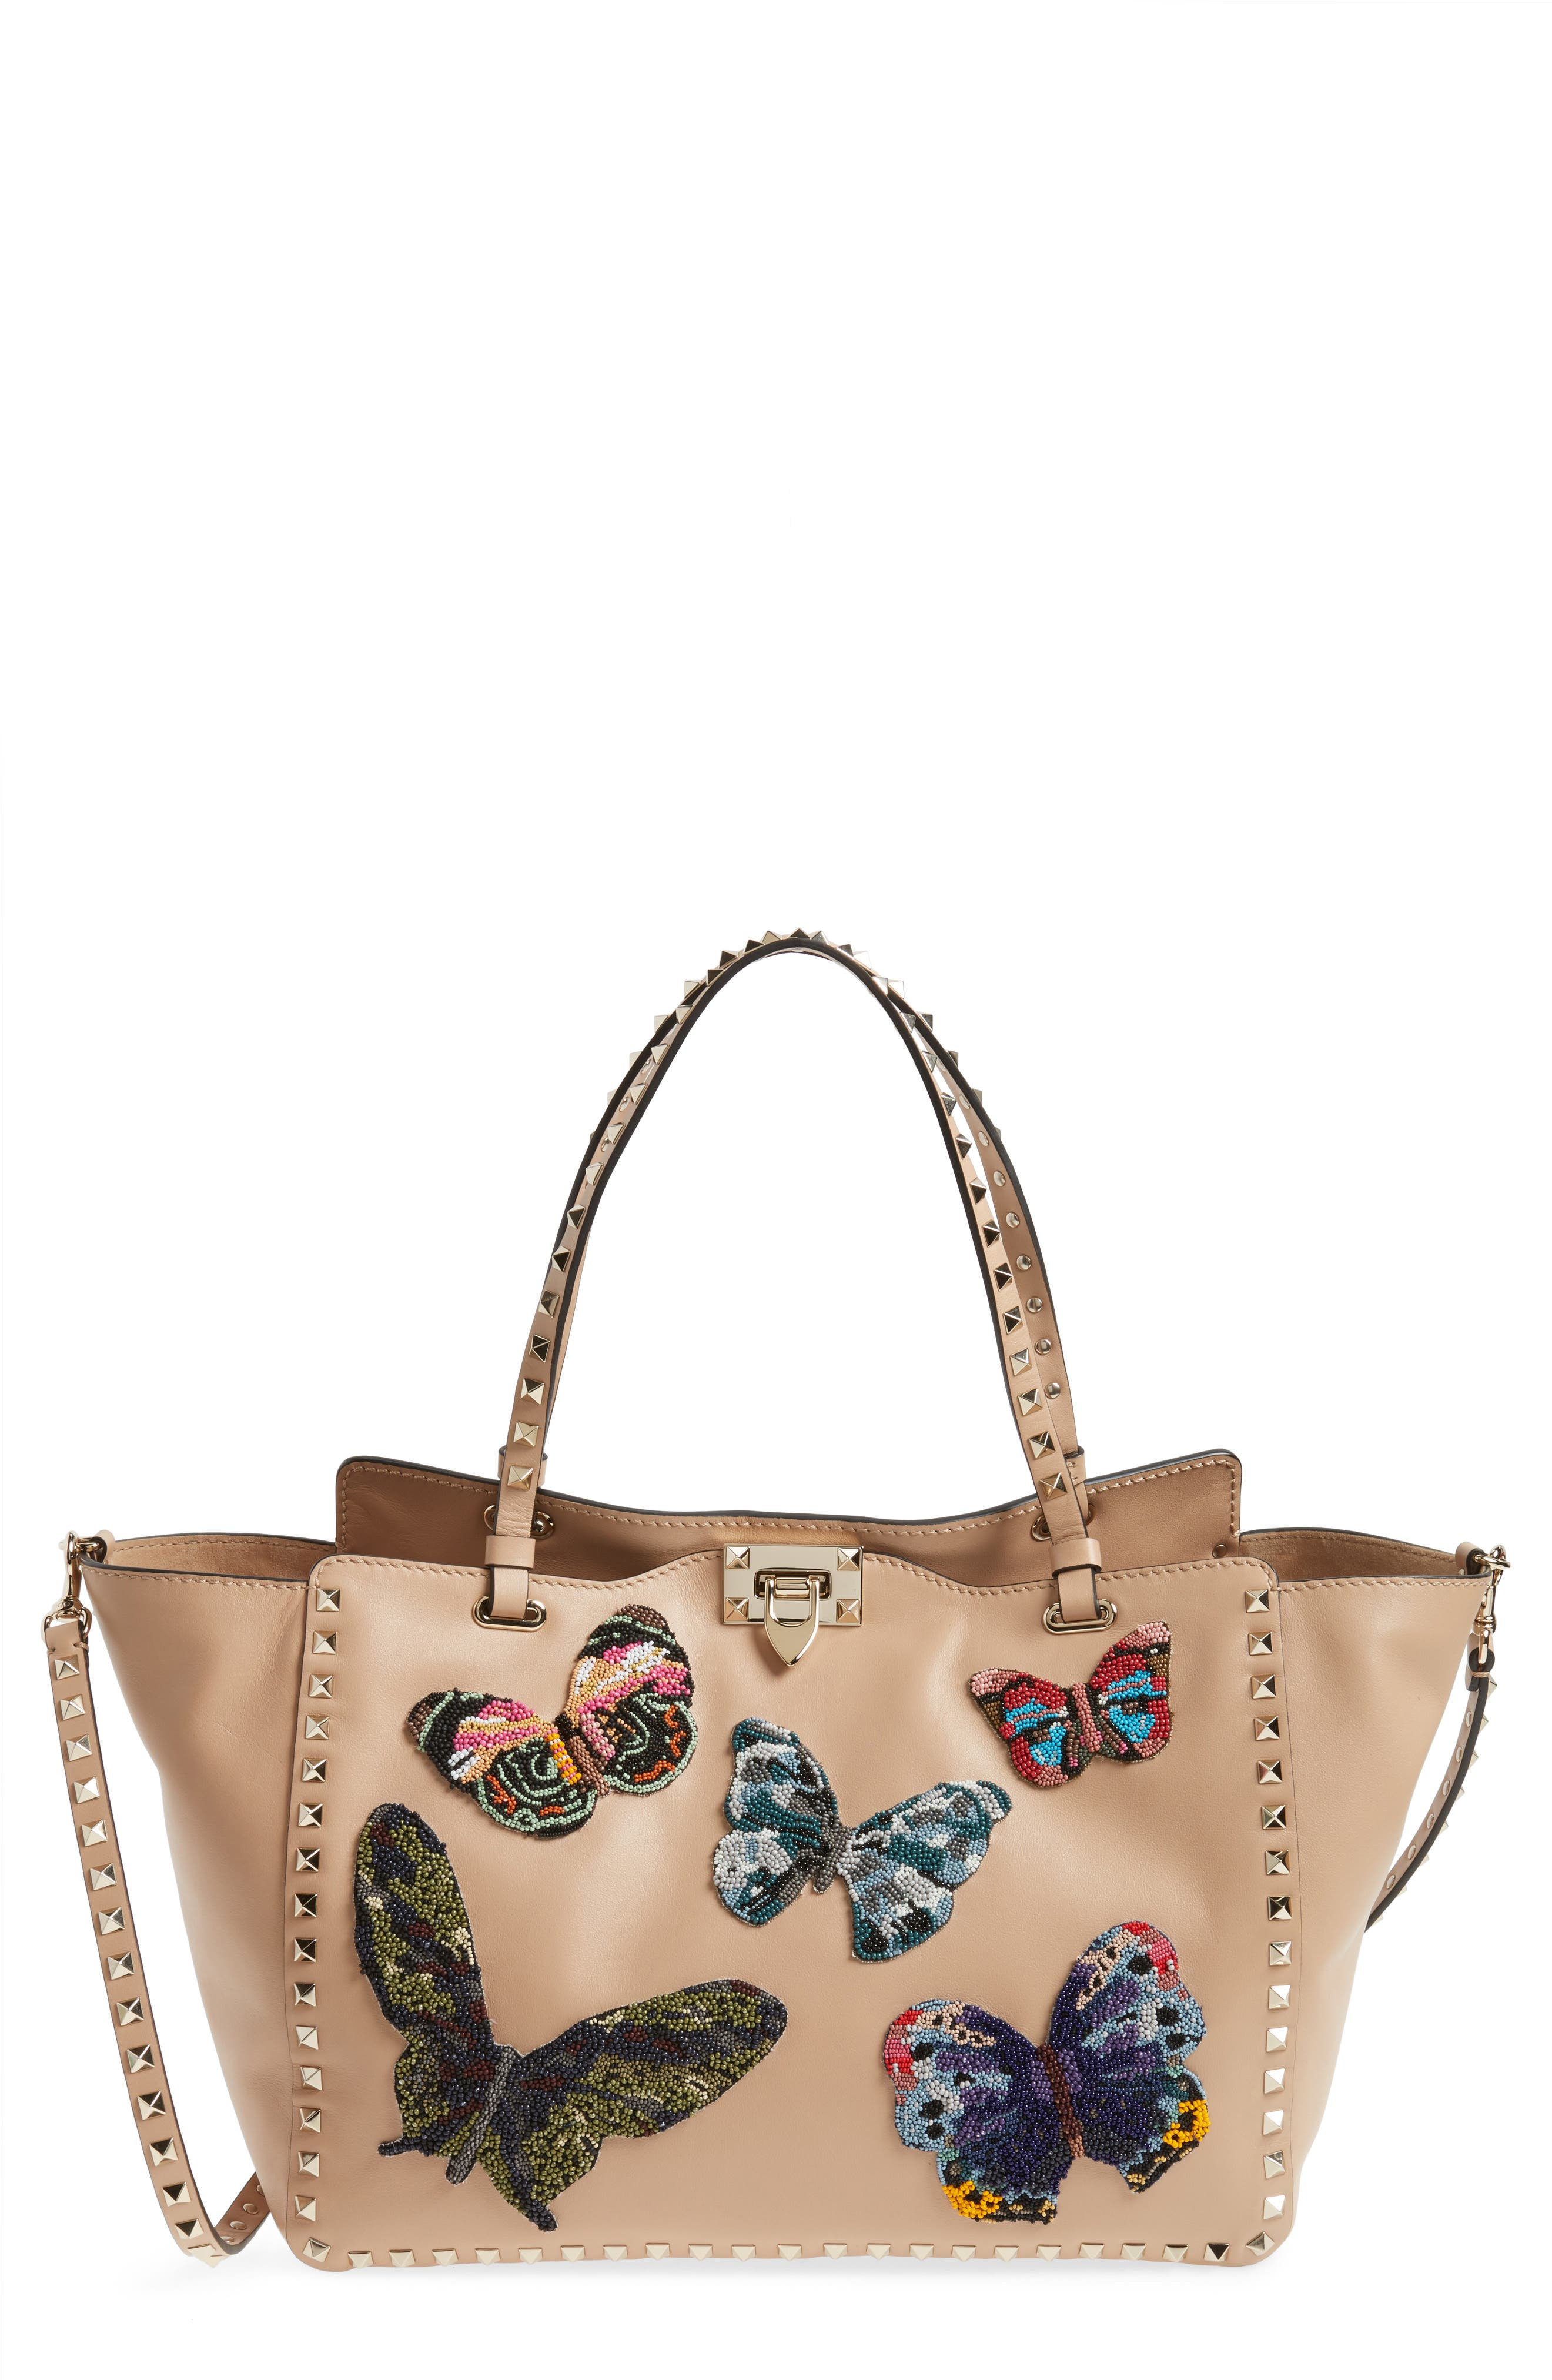 VALENTINO GARAVANI Medium Beaded Butterfly Leather Tote